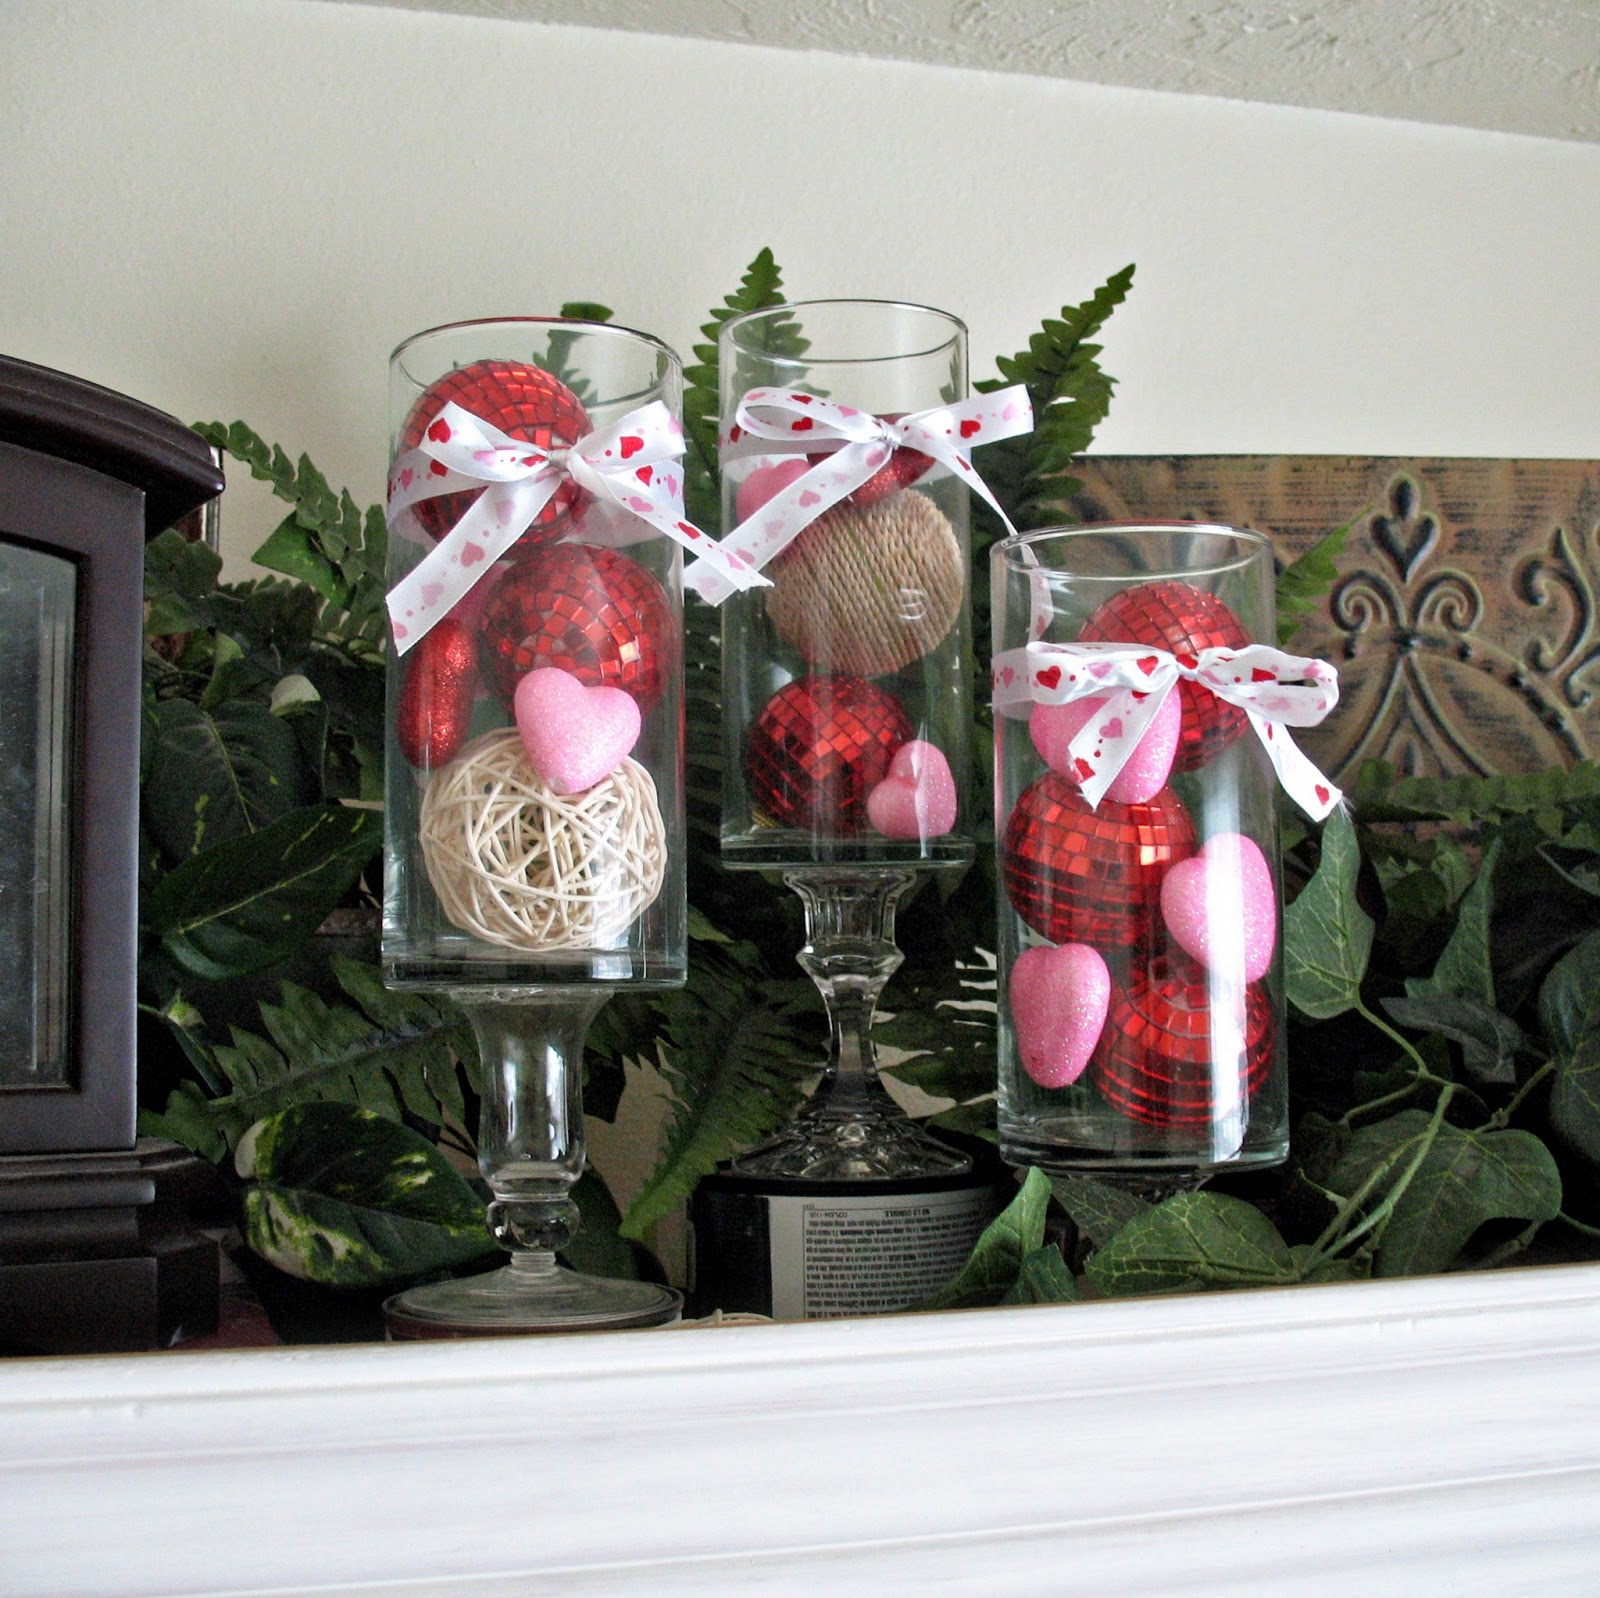 Valentine Home Decorations: Valentine's Day Decorations